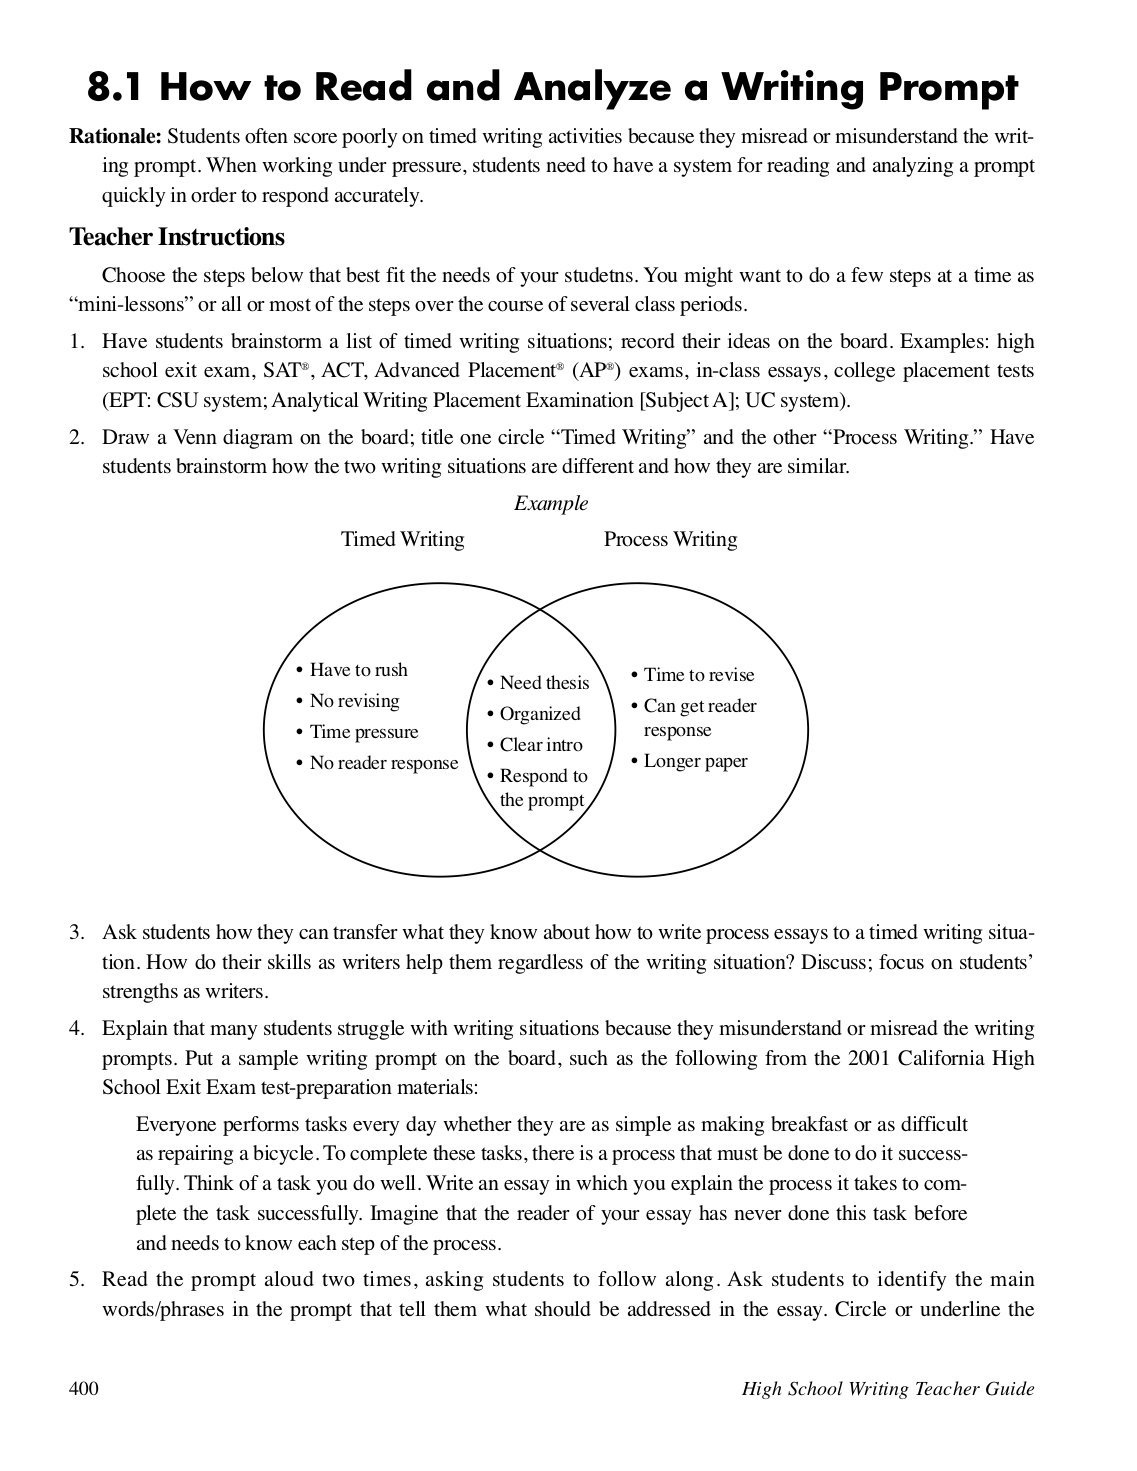 023 Prompts For Writing Essays Essay Example Model College Homework Academic Service How To Read And Analyze Prompt Best Persuasive Opinion 4th Grade Full